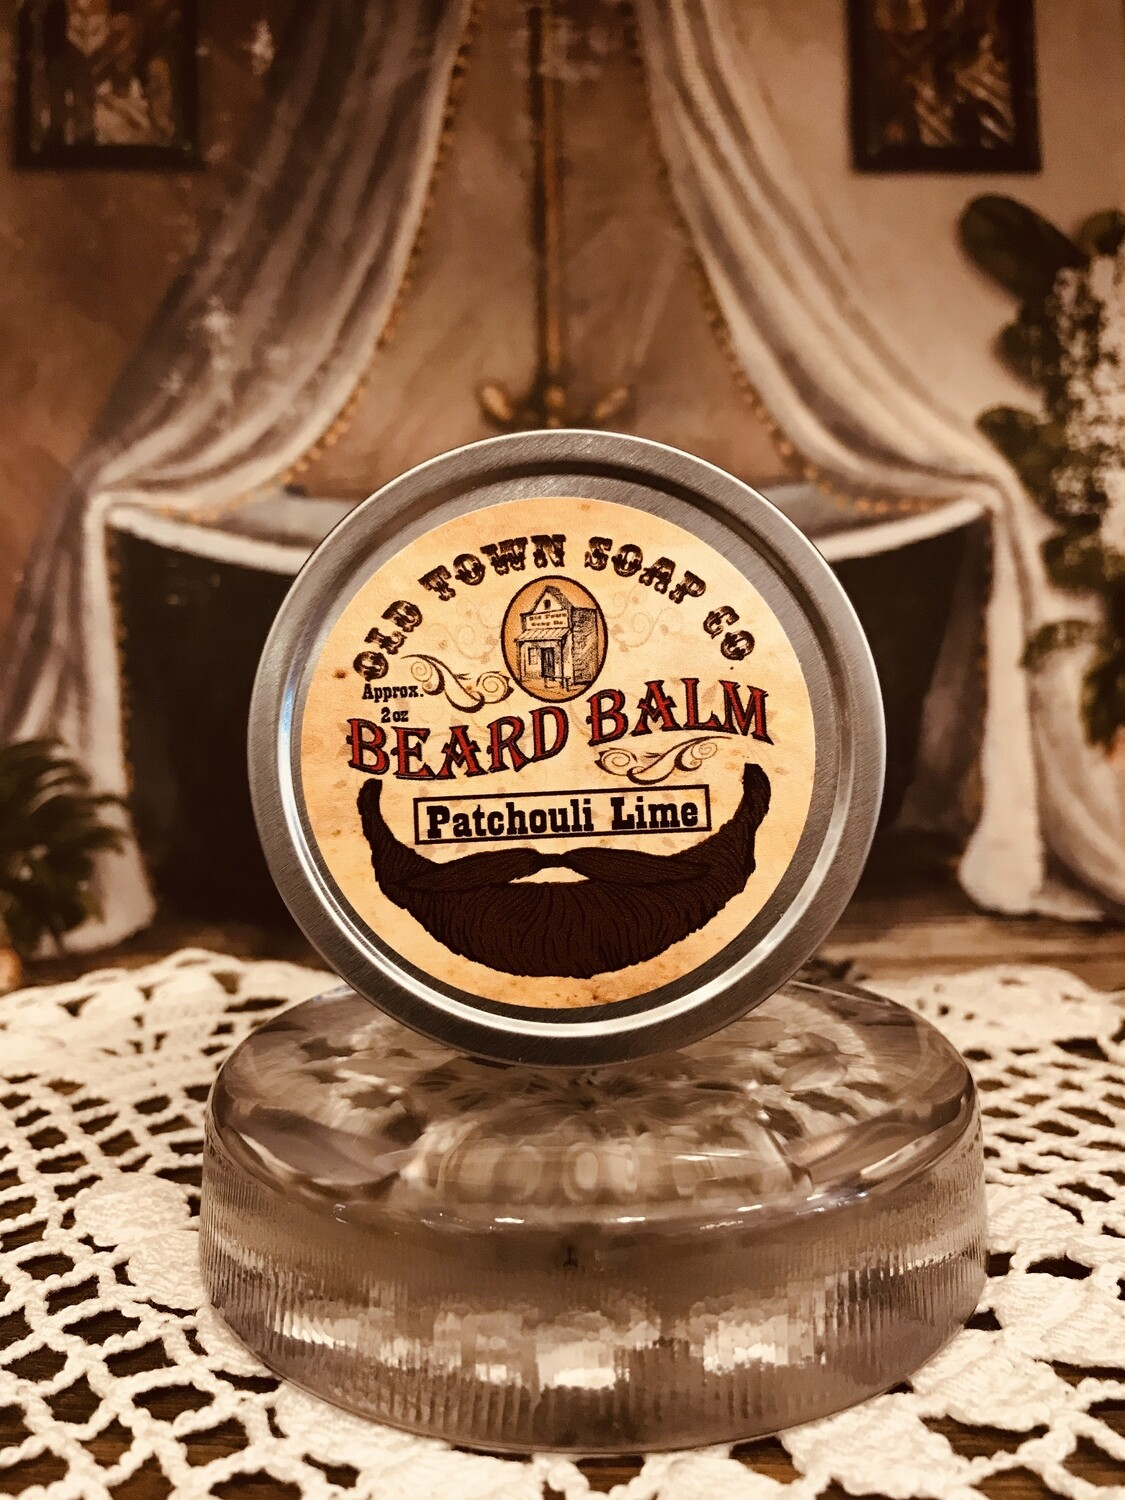 Patchouli & Lime -Beard Balm